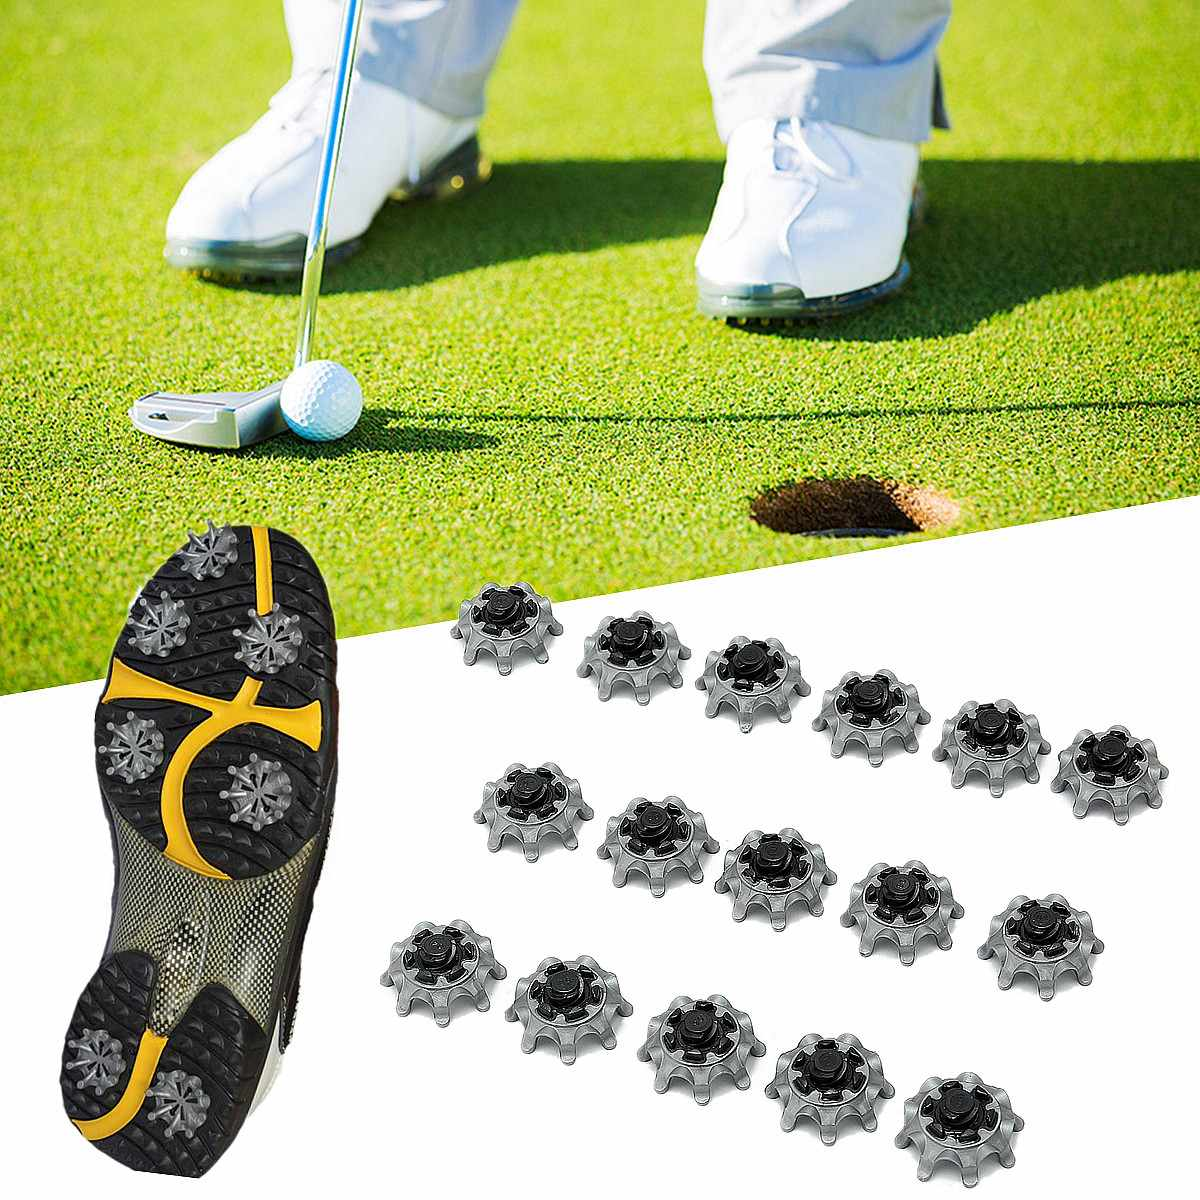 BSAID 16 pcs/lot Golf Shoes Spikes Replaceable Pins 1/4 Turn Studs Cleats Fast Twist Shoe Spikes Golf Practice Accessories все цены